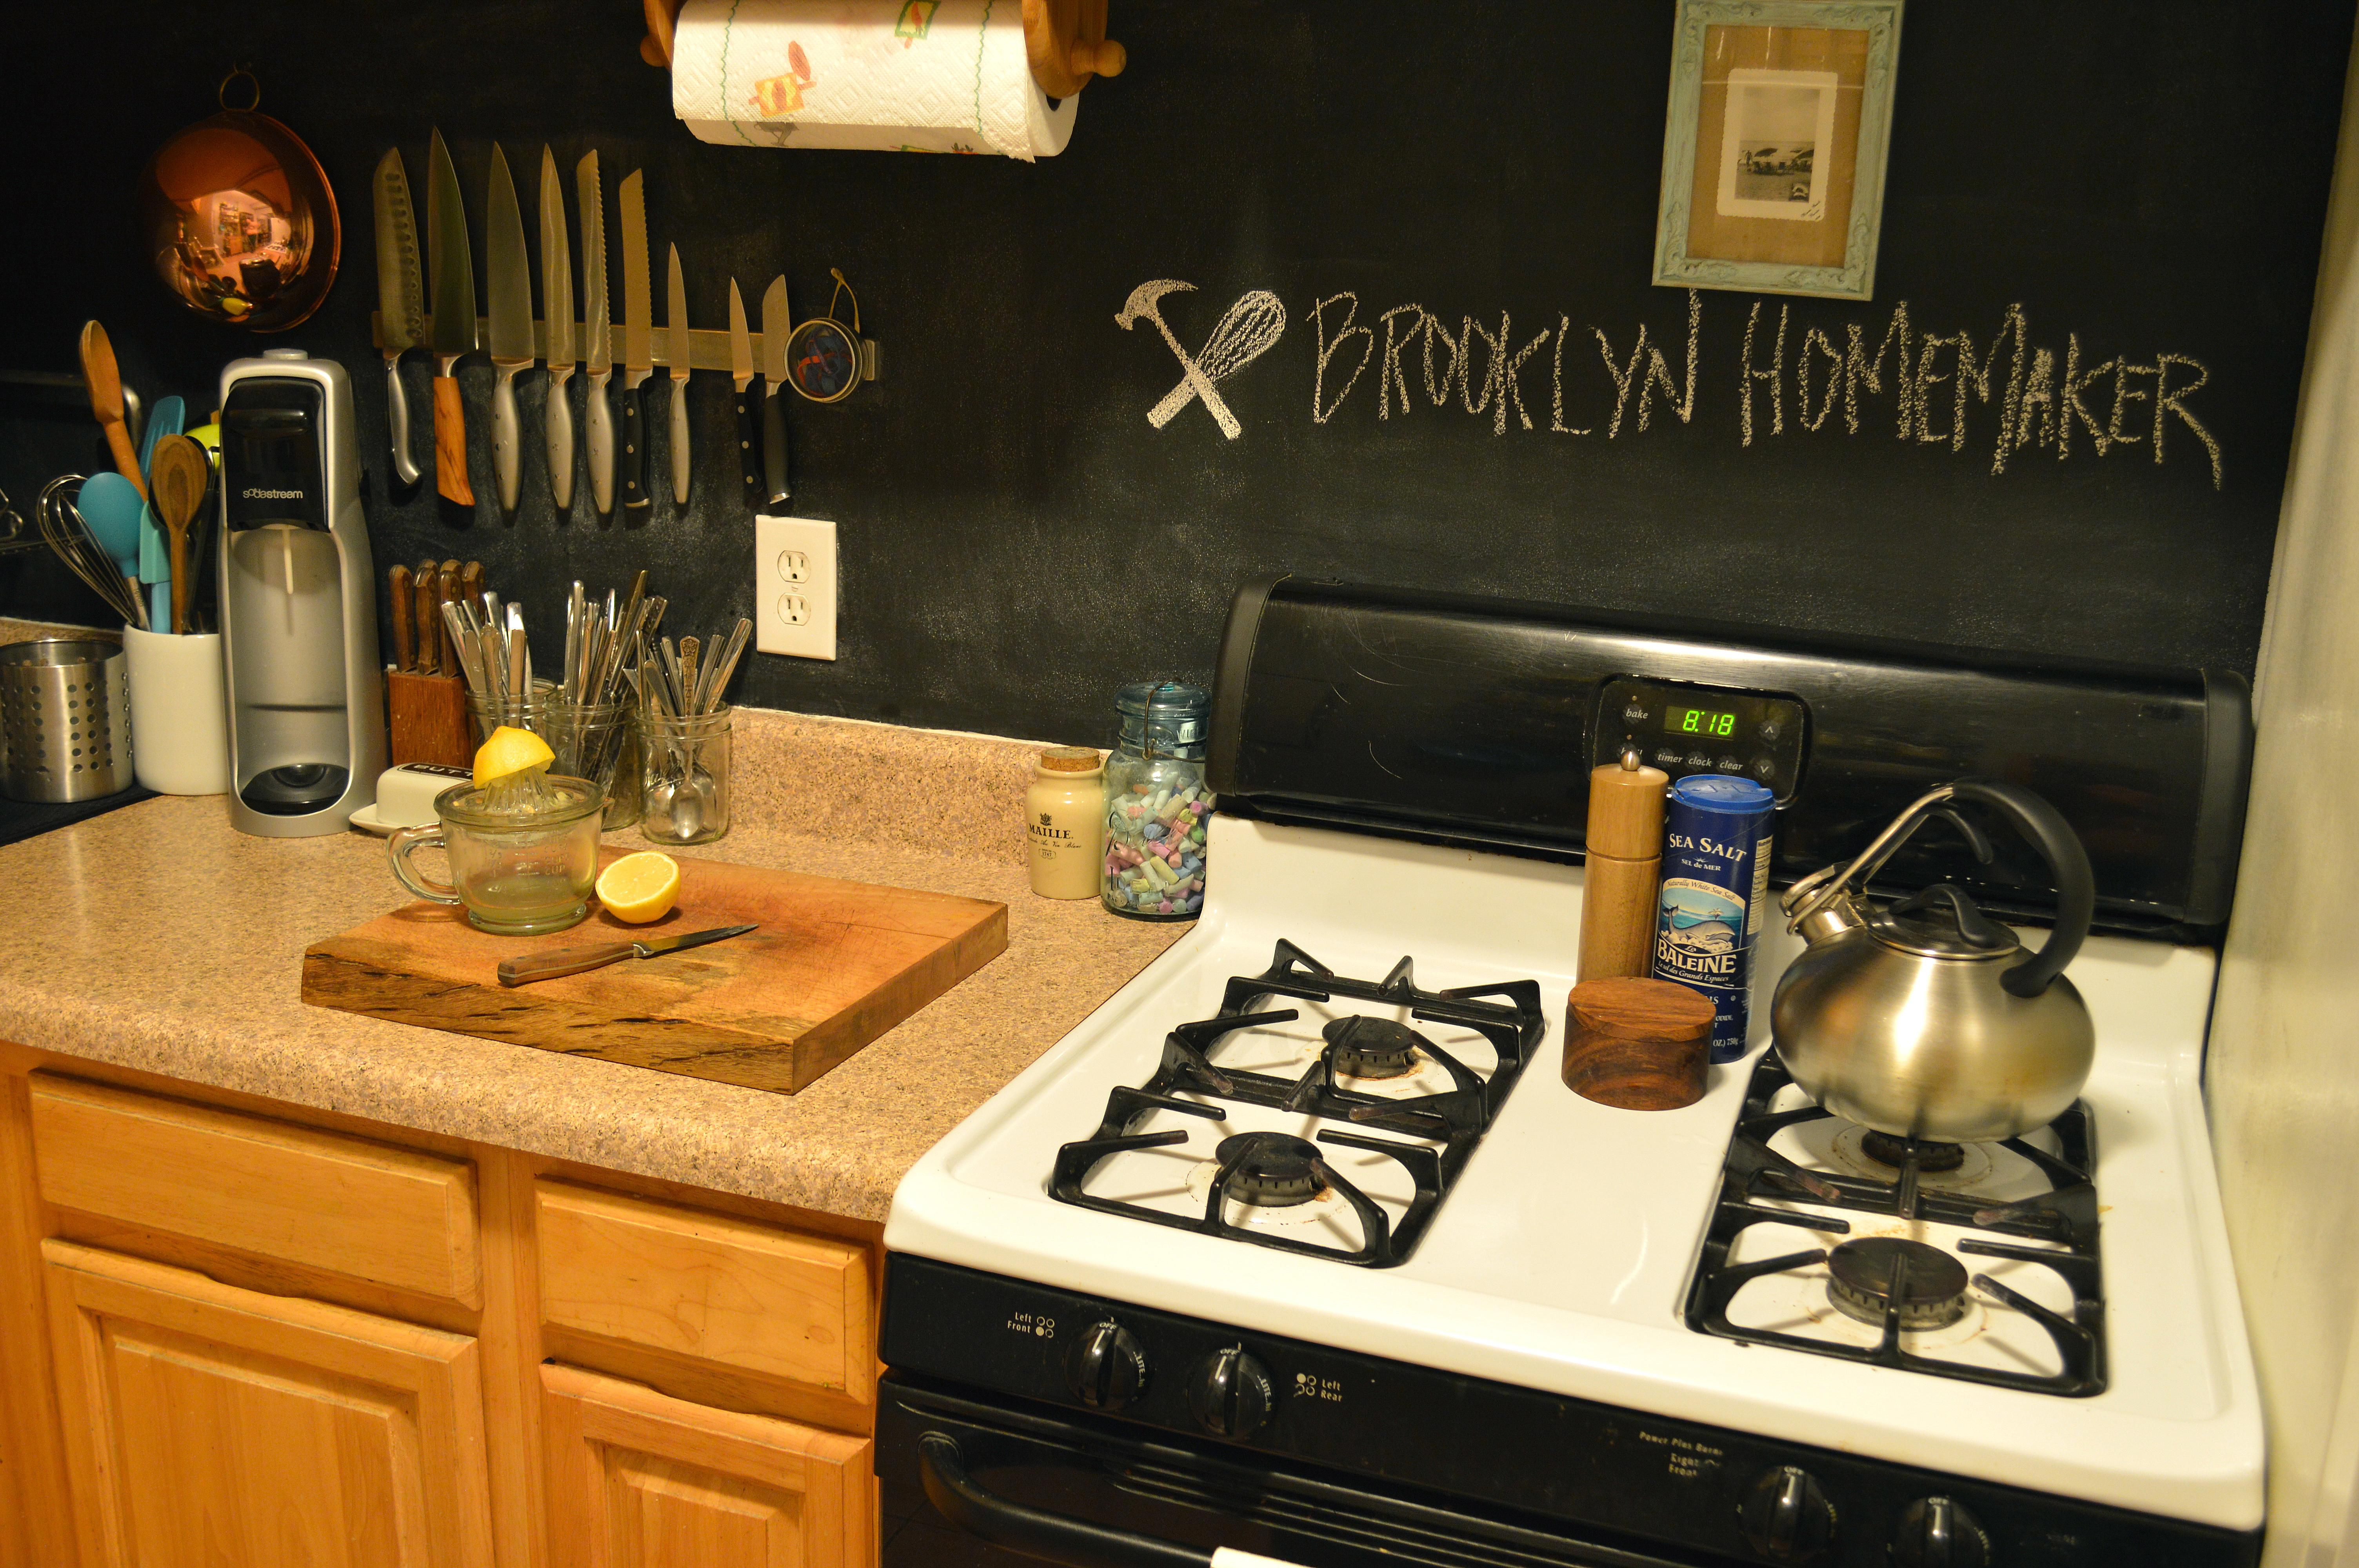 chalkboard backsplash via smallspaces about 57bb5a523df78c8763fbbfee